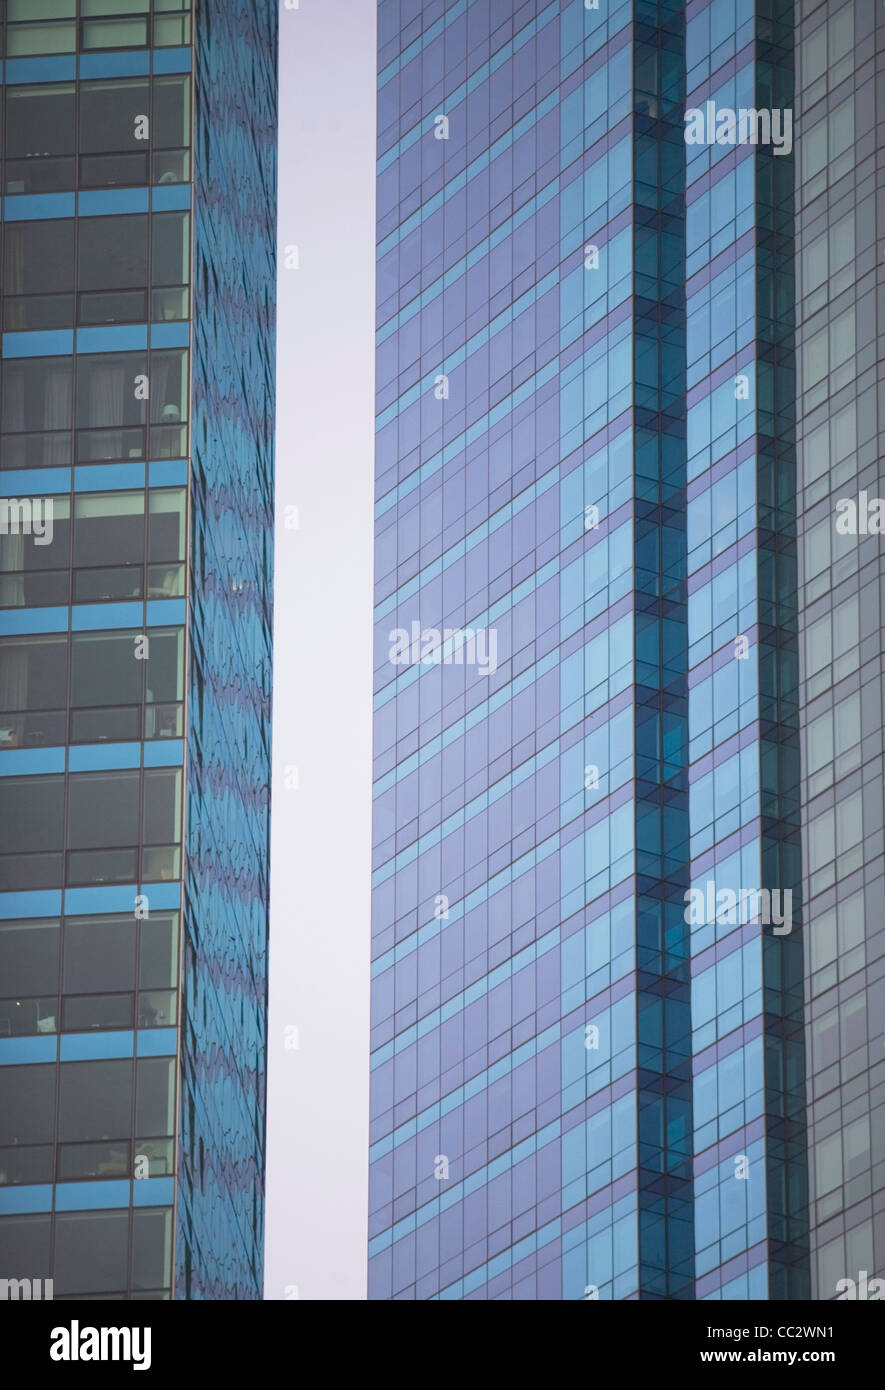 USA, New York City, Exterior of modern office buildings - Stock Image